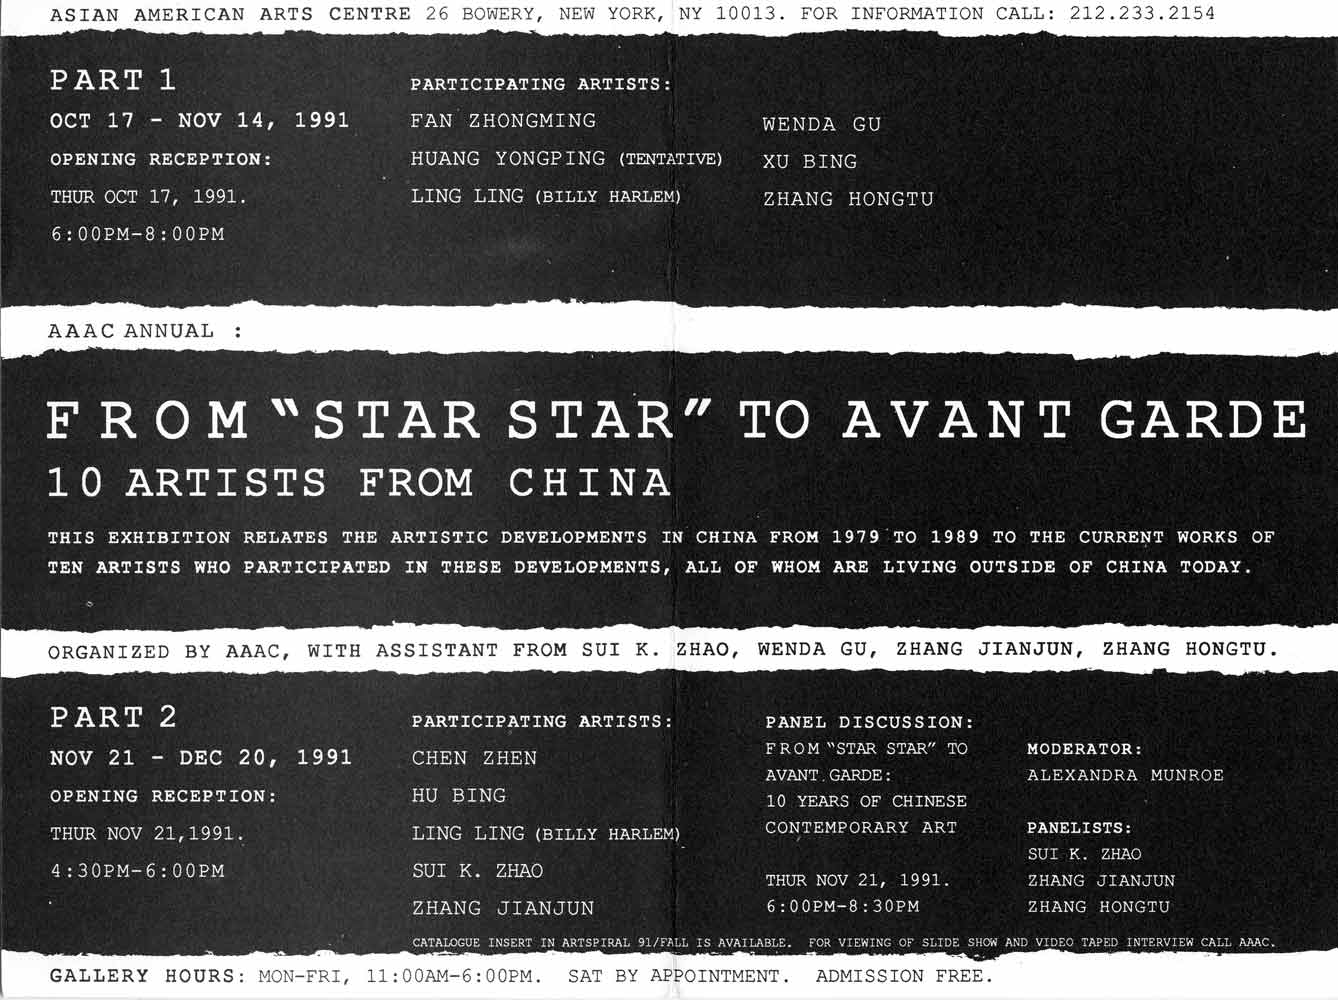 From Star Star to Avant Garde, flyer, pg 2